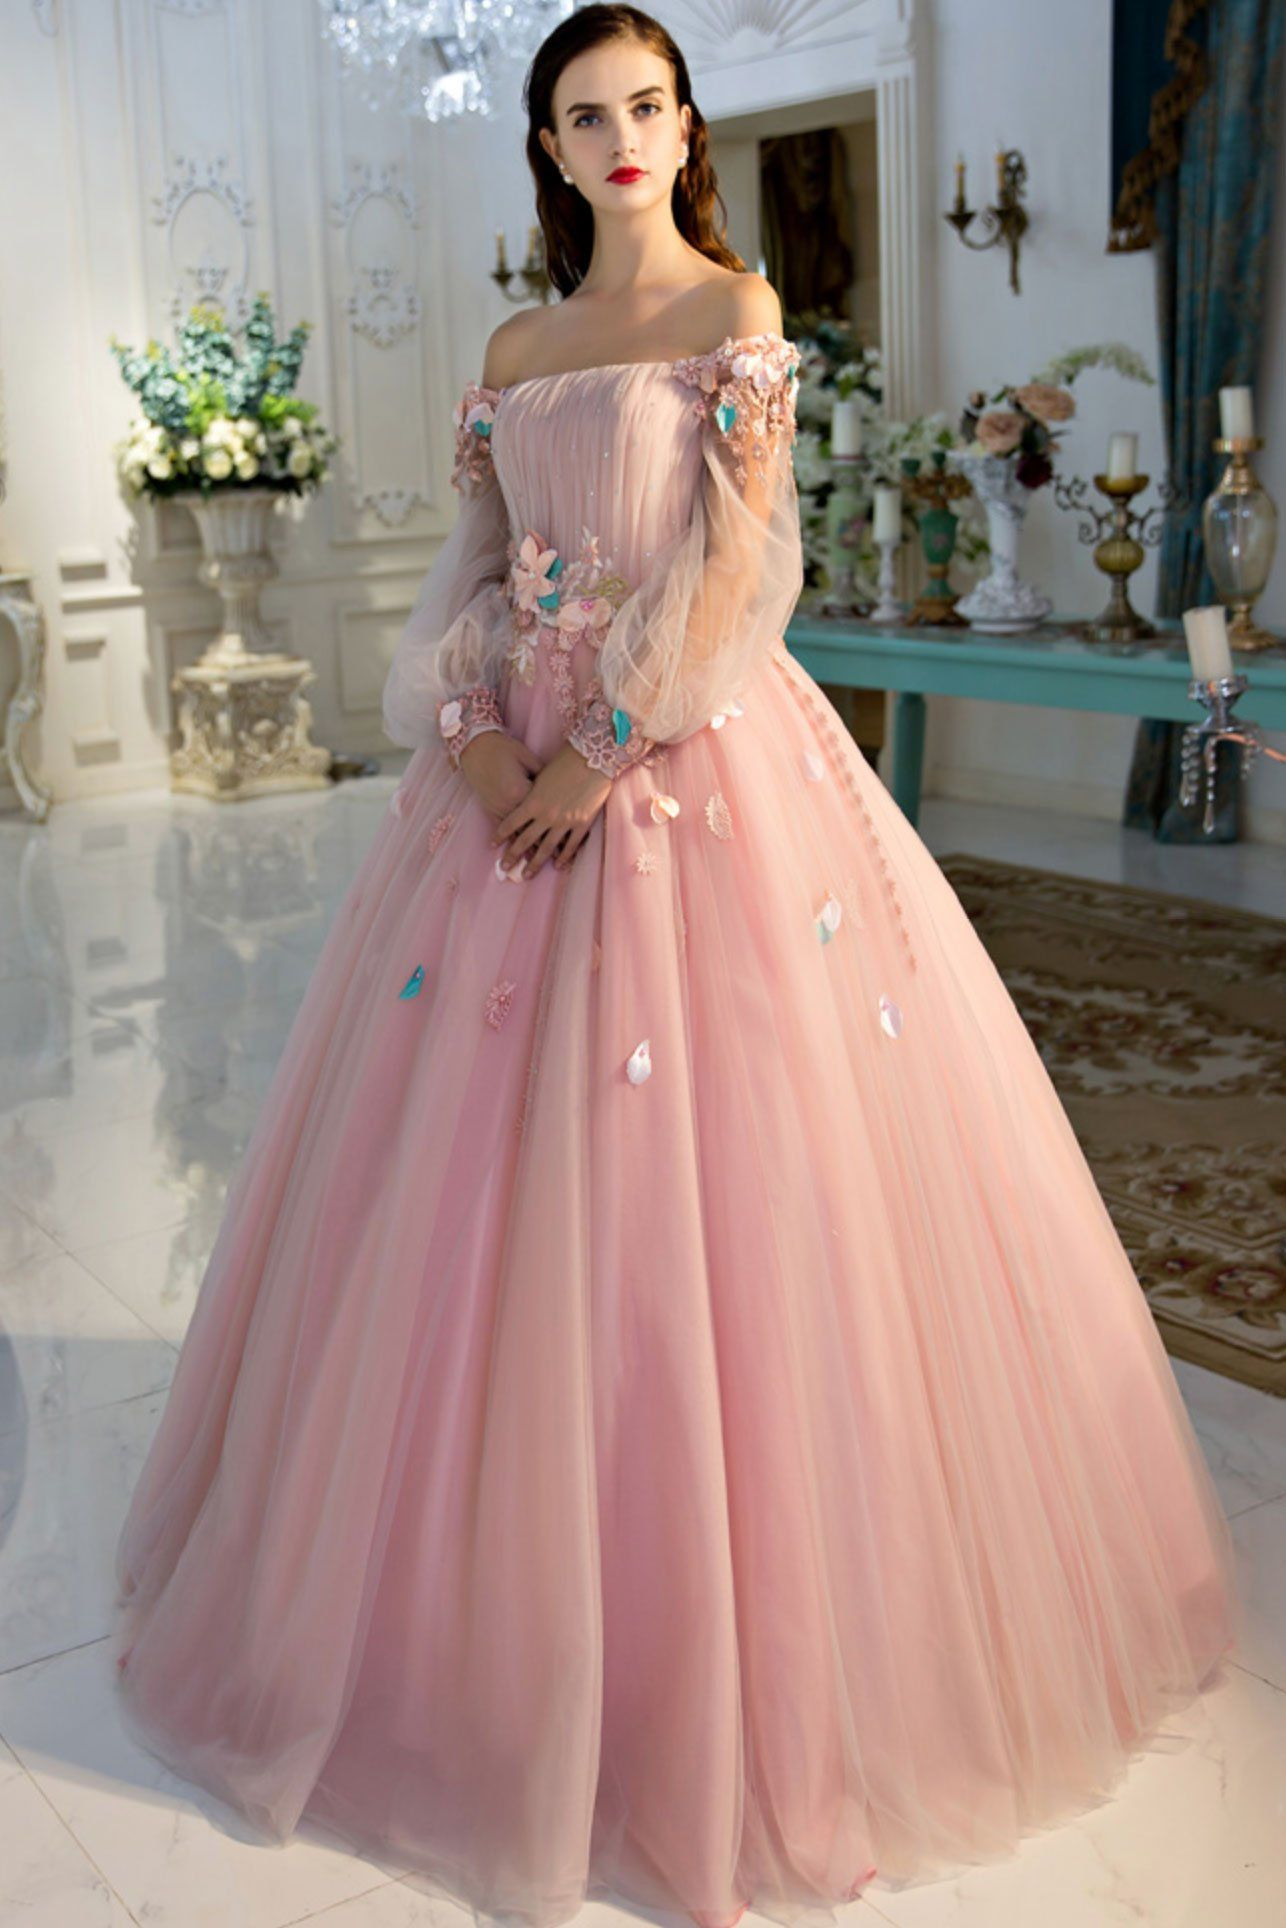 Pink Off Shoulder Tulle Long Prom Dress Sweet 16 Dress Fairy Prom Dress Pink Ball Gown Fairytale Dress Prom [ 1928 x 1286 Pixel ]